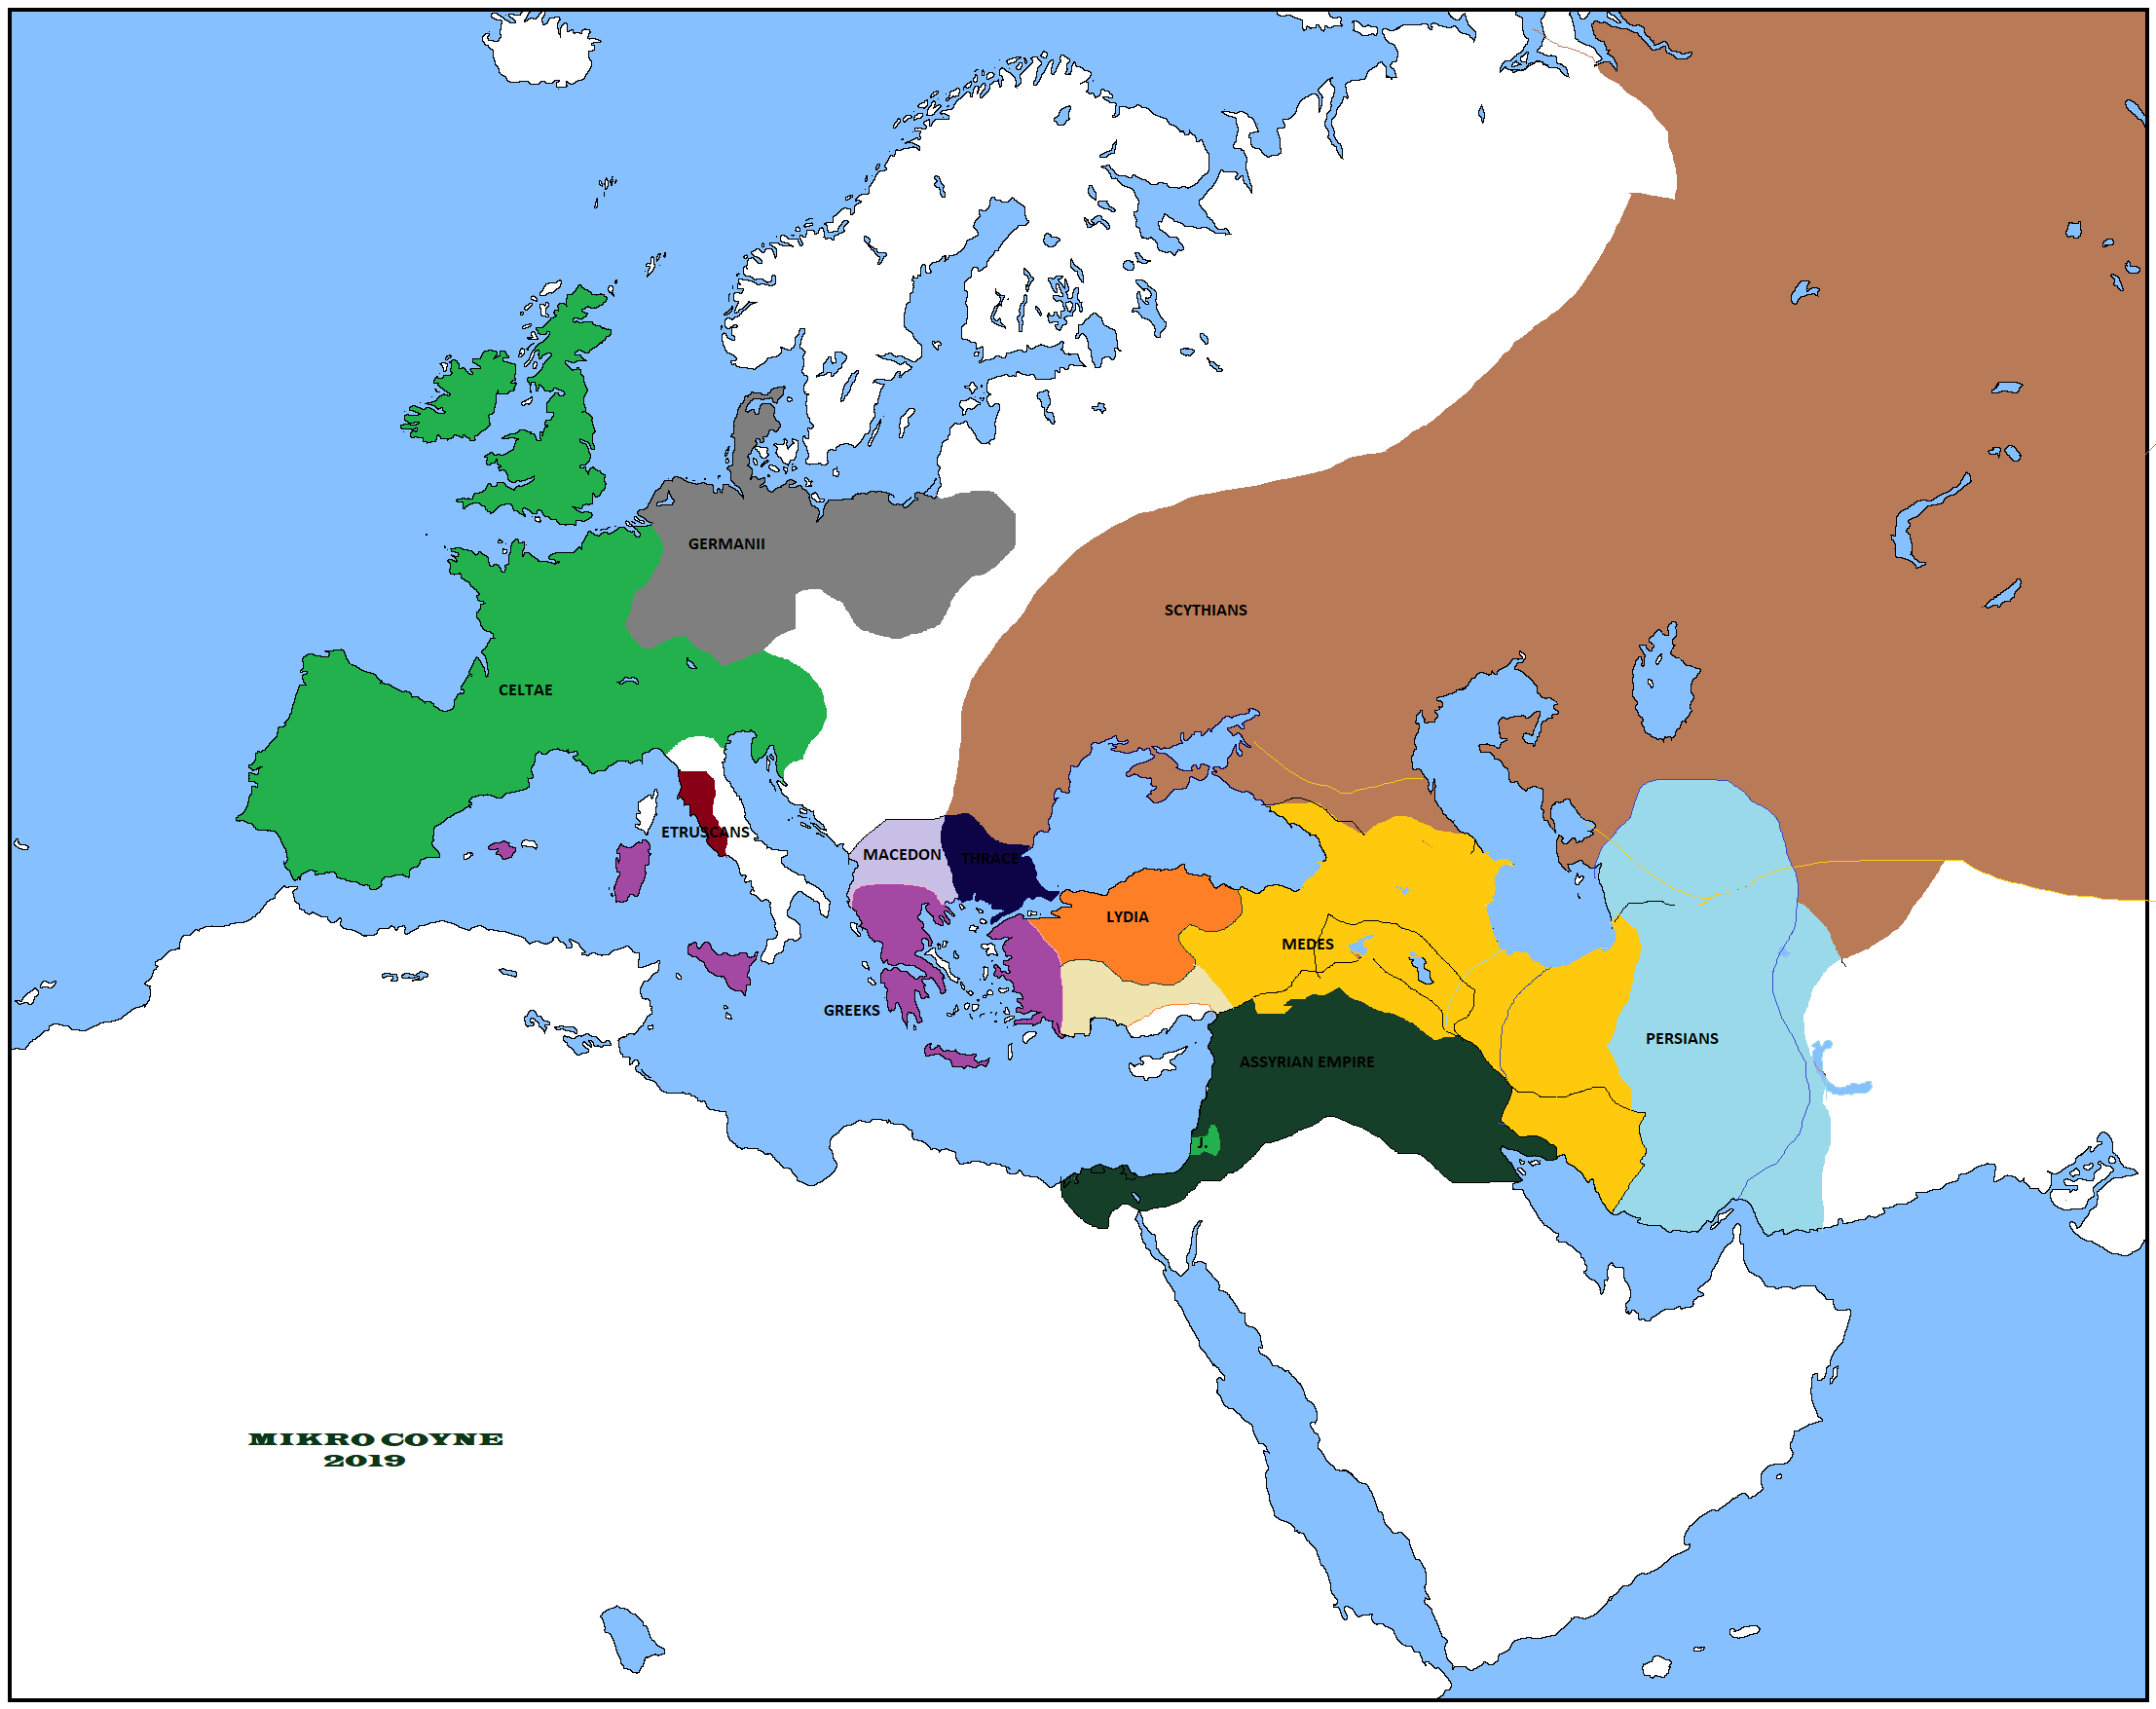 assyrian empire and elam 2.png